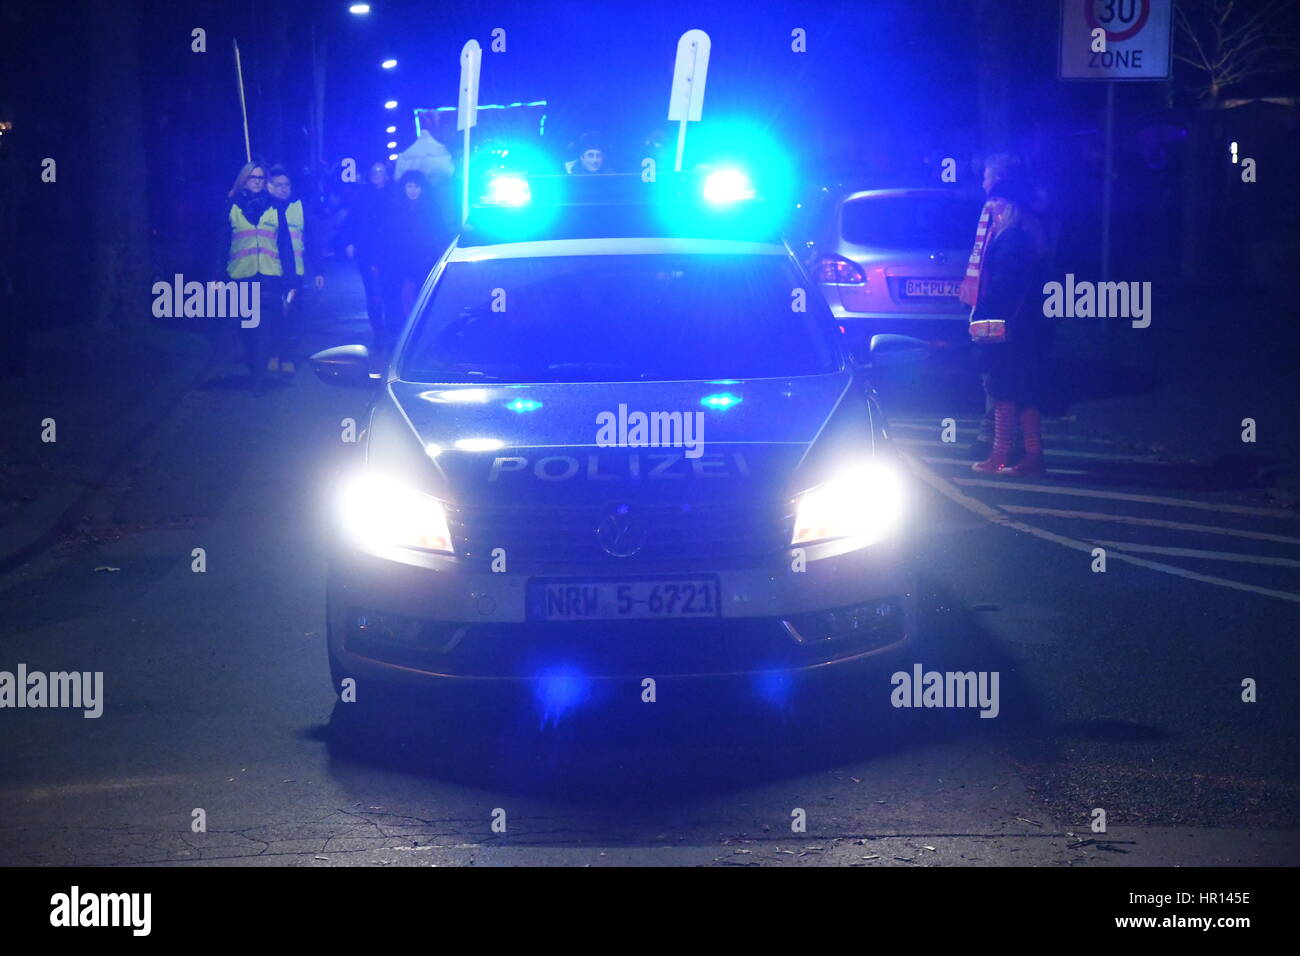 Police Siren Stock Photos Images Page 3 Alamy The Blue Light Of A